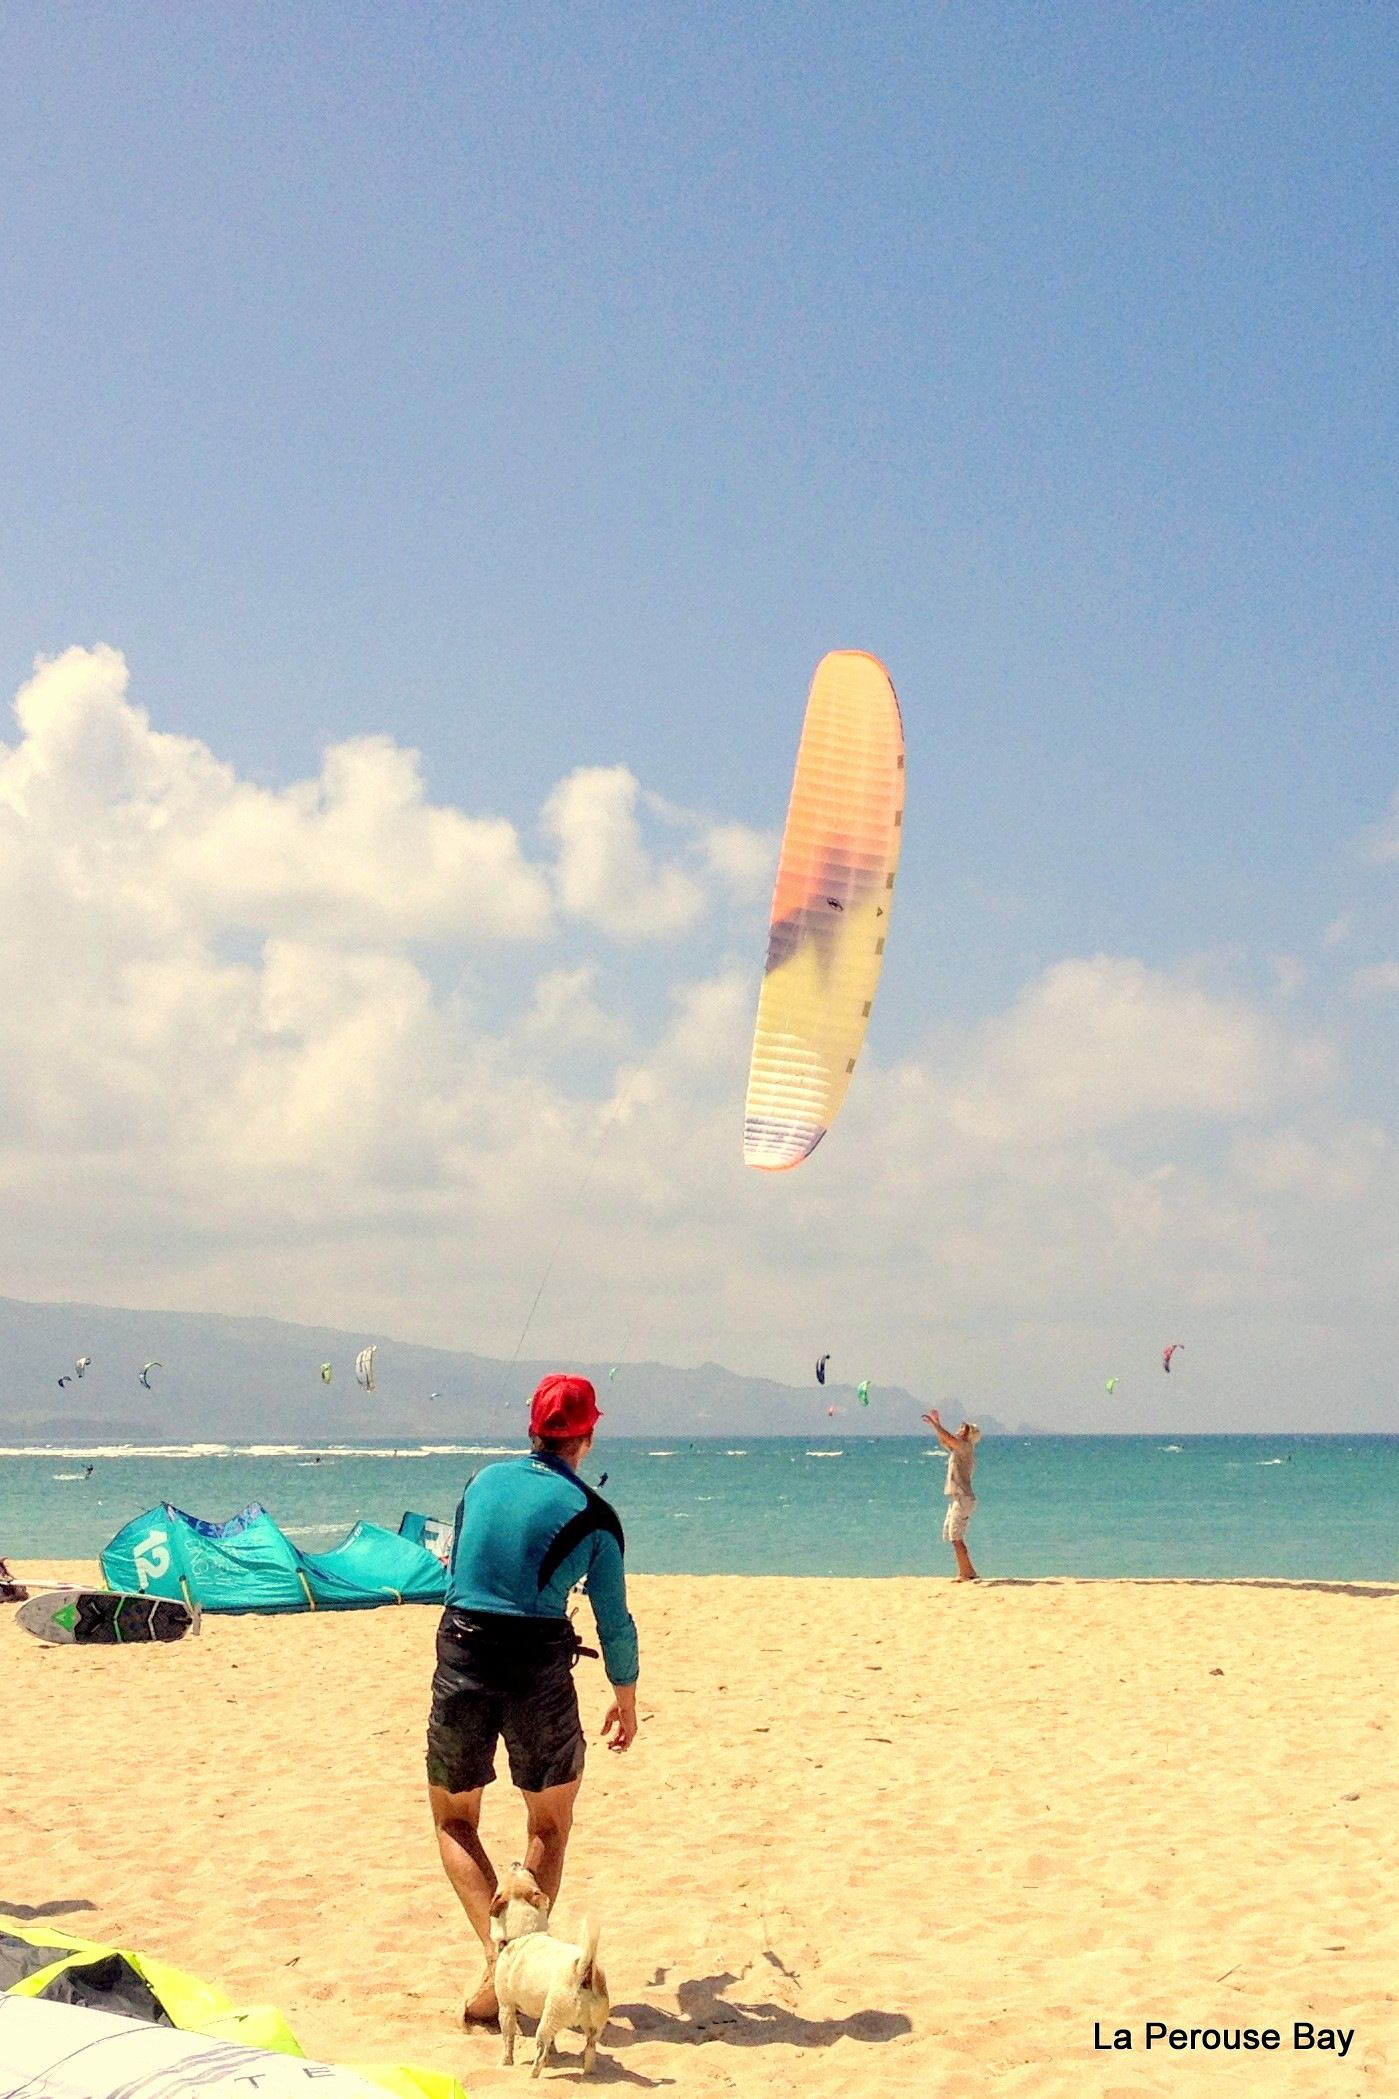 Beautiful day at Kanaha beach, Maui. Foil kite � checked, Foil board checked, steady wind � checked, friends � checked.